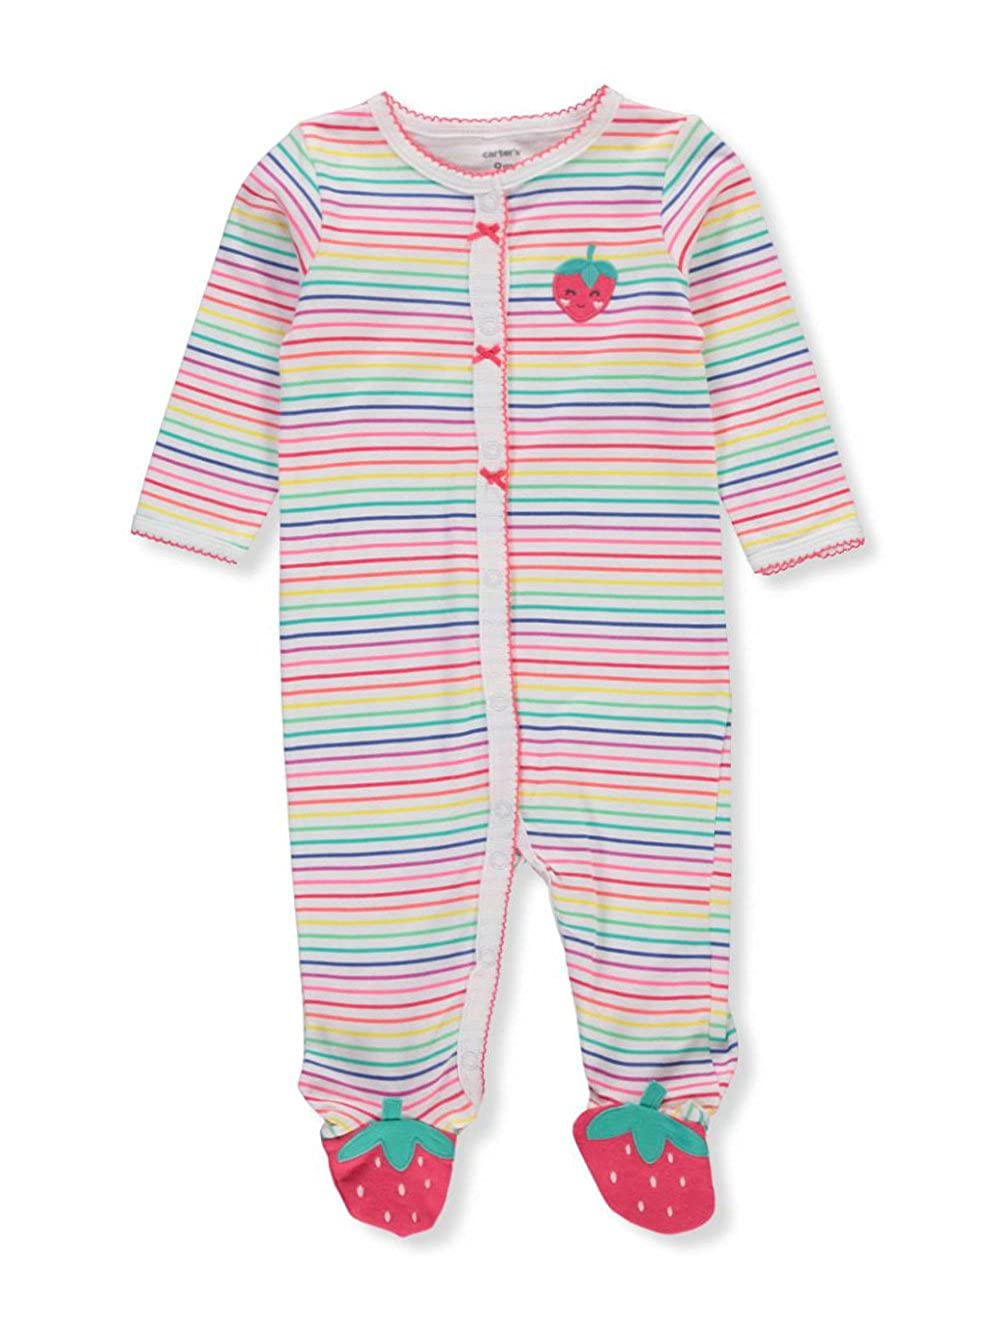 1725af0a6cd3 Amazon.com  Carter s Baby Girls  Cotton Sleep and Play  Clothing